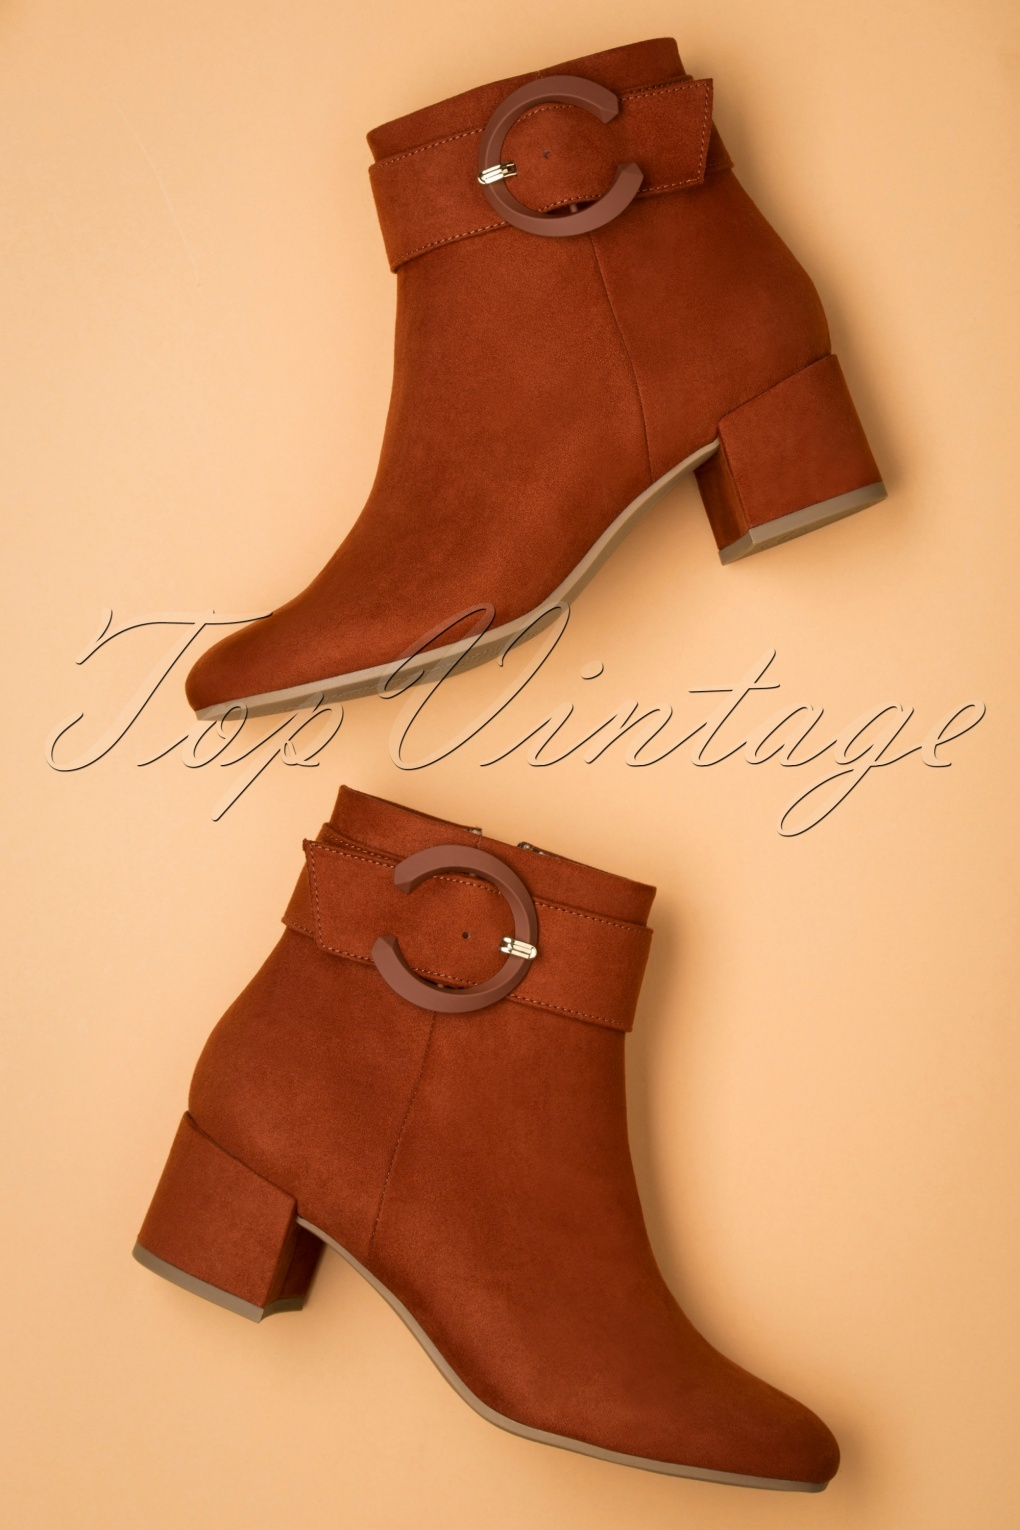 70s Shoes, Platforms, Boots, Heels | 1970s Shoes 70s Jessy Suedine Ankle Booties in Cinnamon £55.09 AT vintagedancer.com